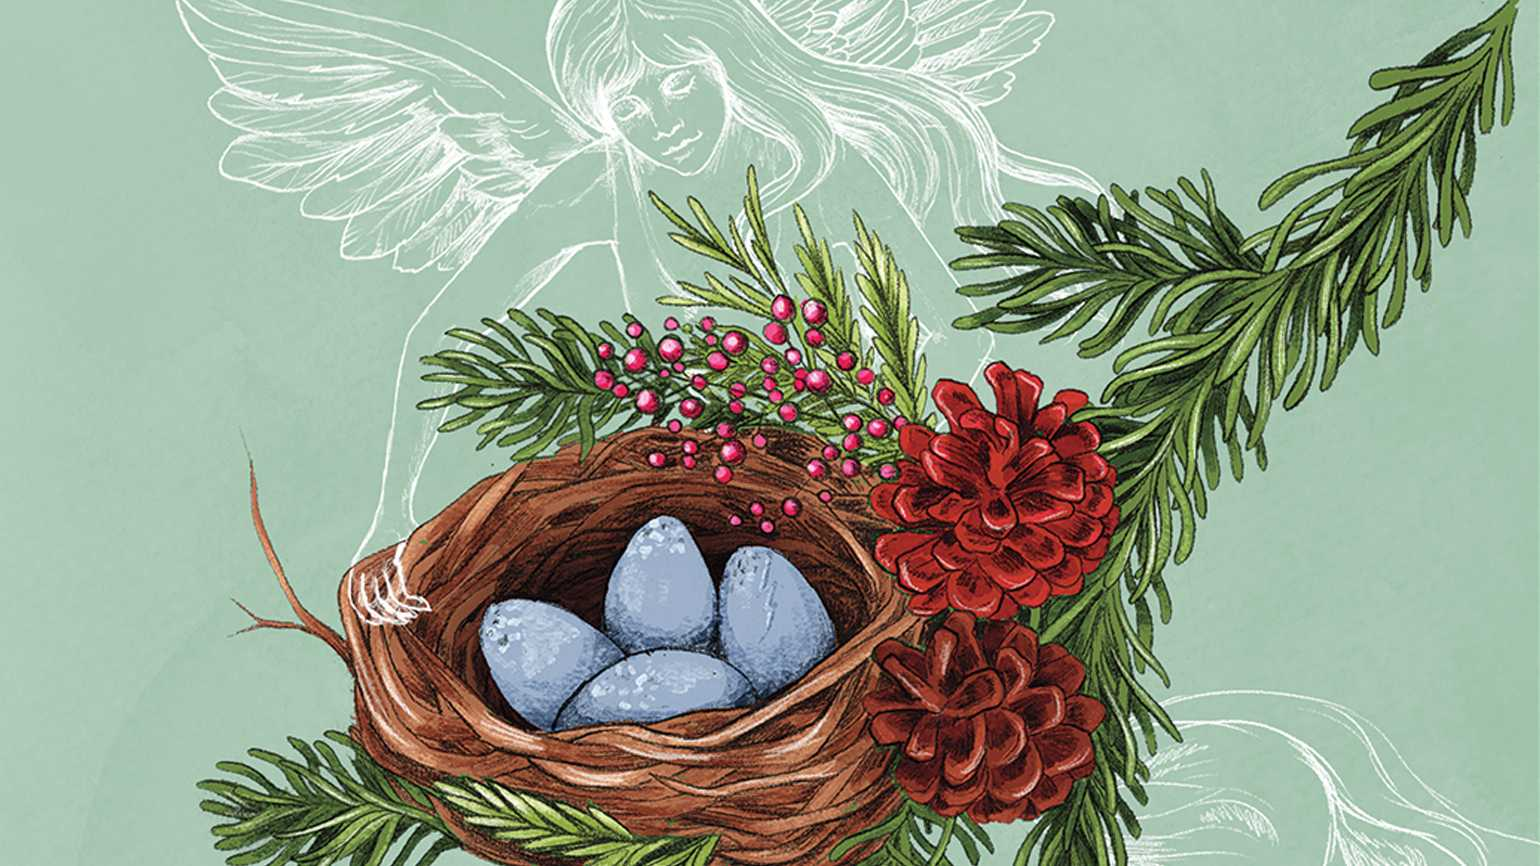 An artist's rendering of an angel holding a nest of blue eggs.